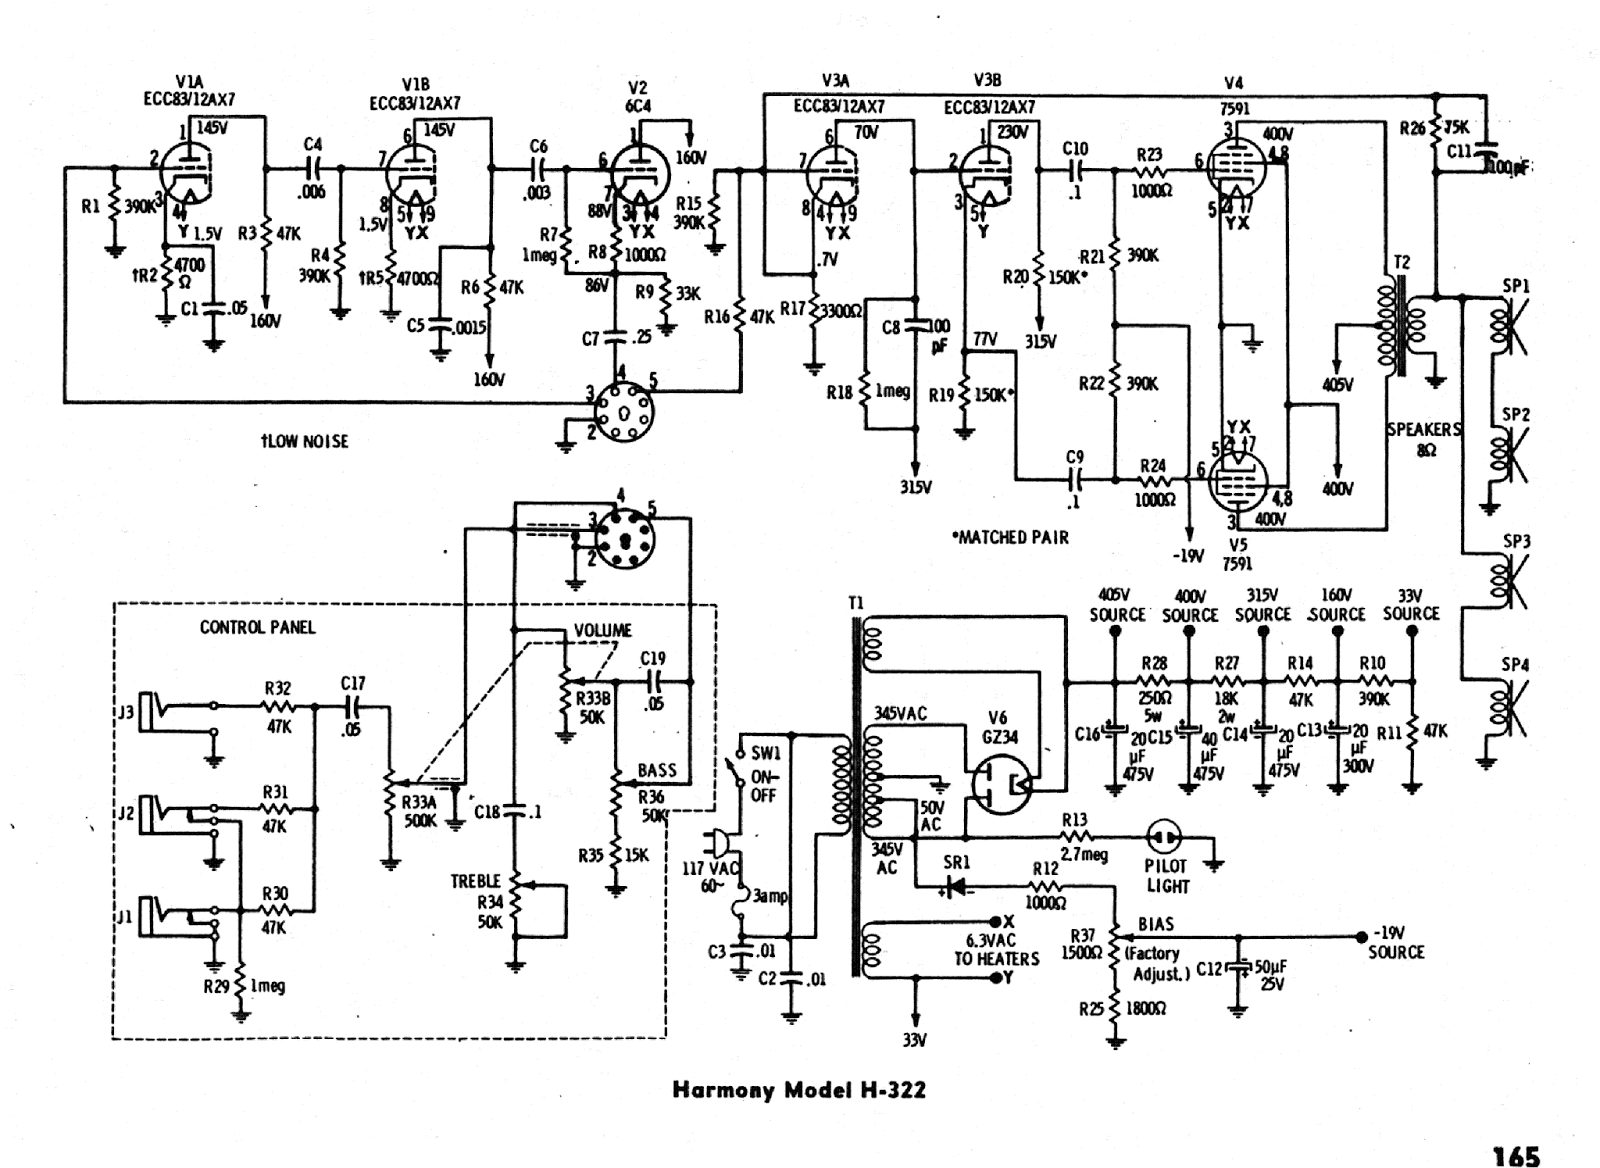 gretsch amp schematic judybox revival: october 2013 harmony amp schematic